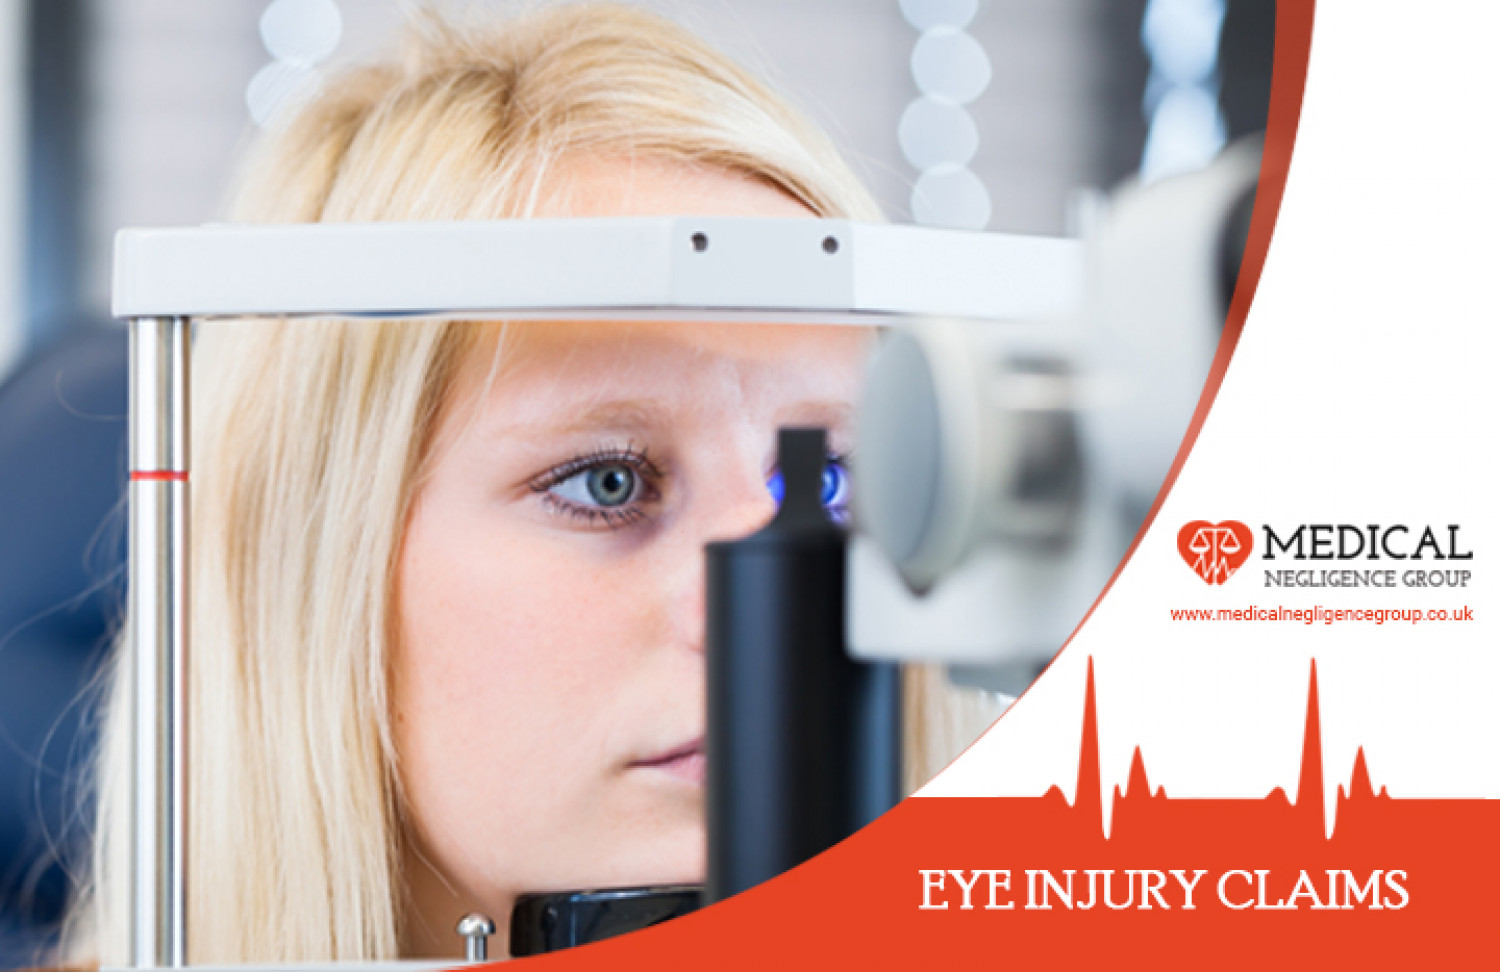 Eye Injury Compensation Claims - Medical Negligence Group Infographic